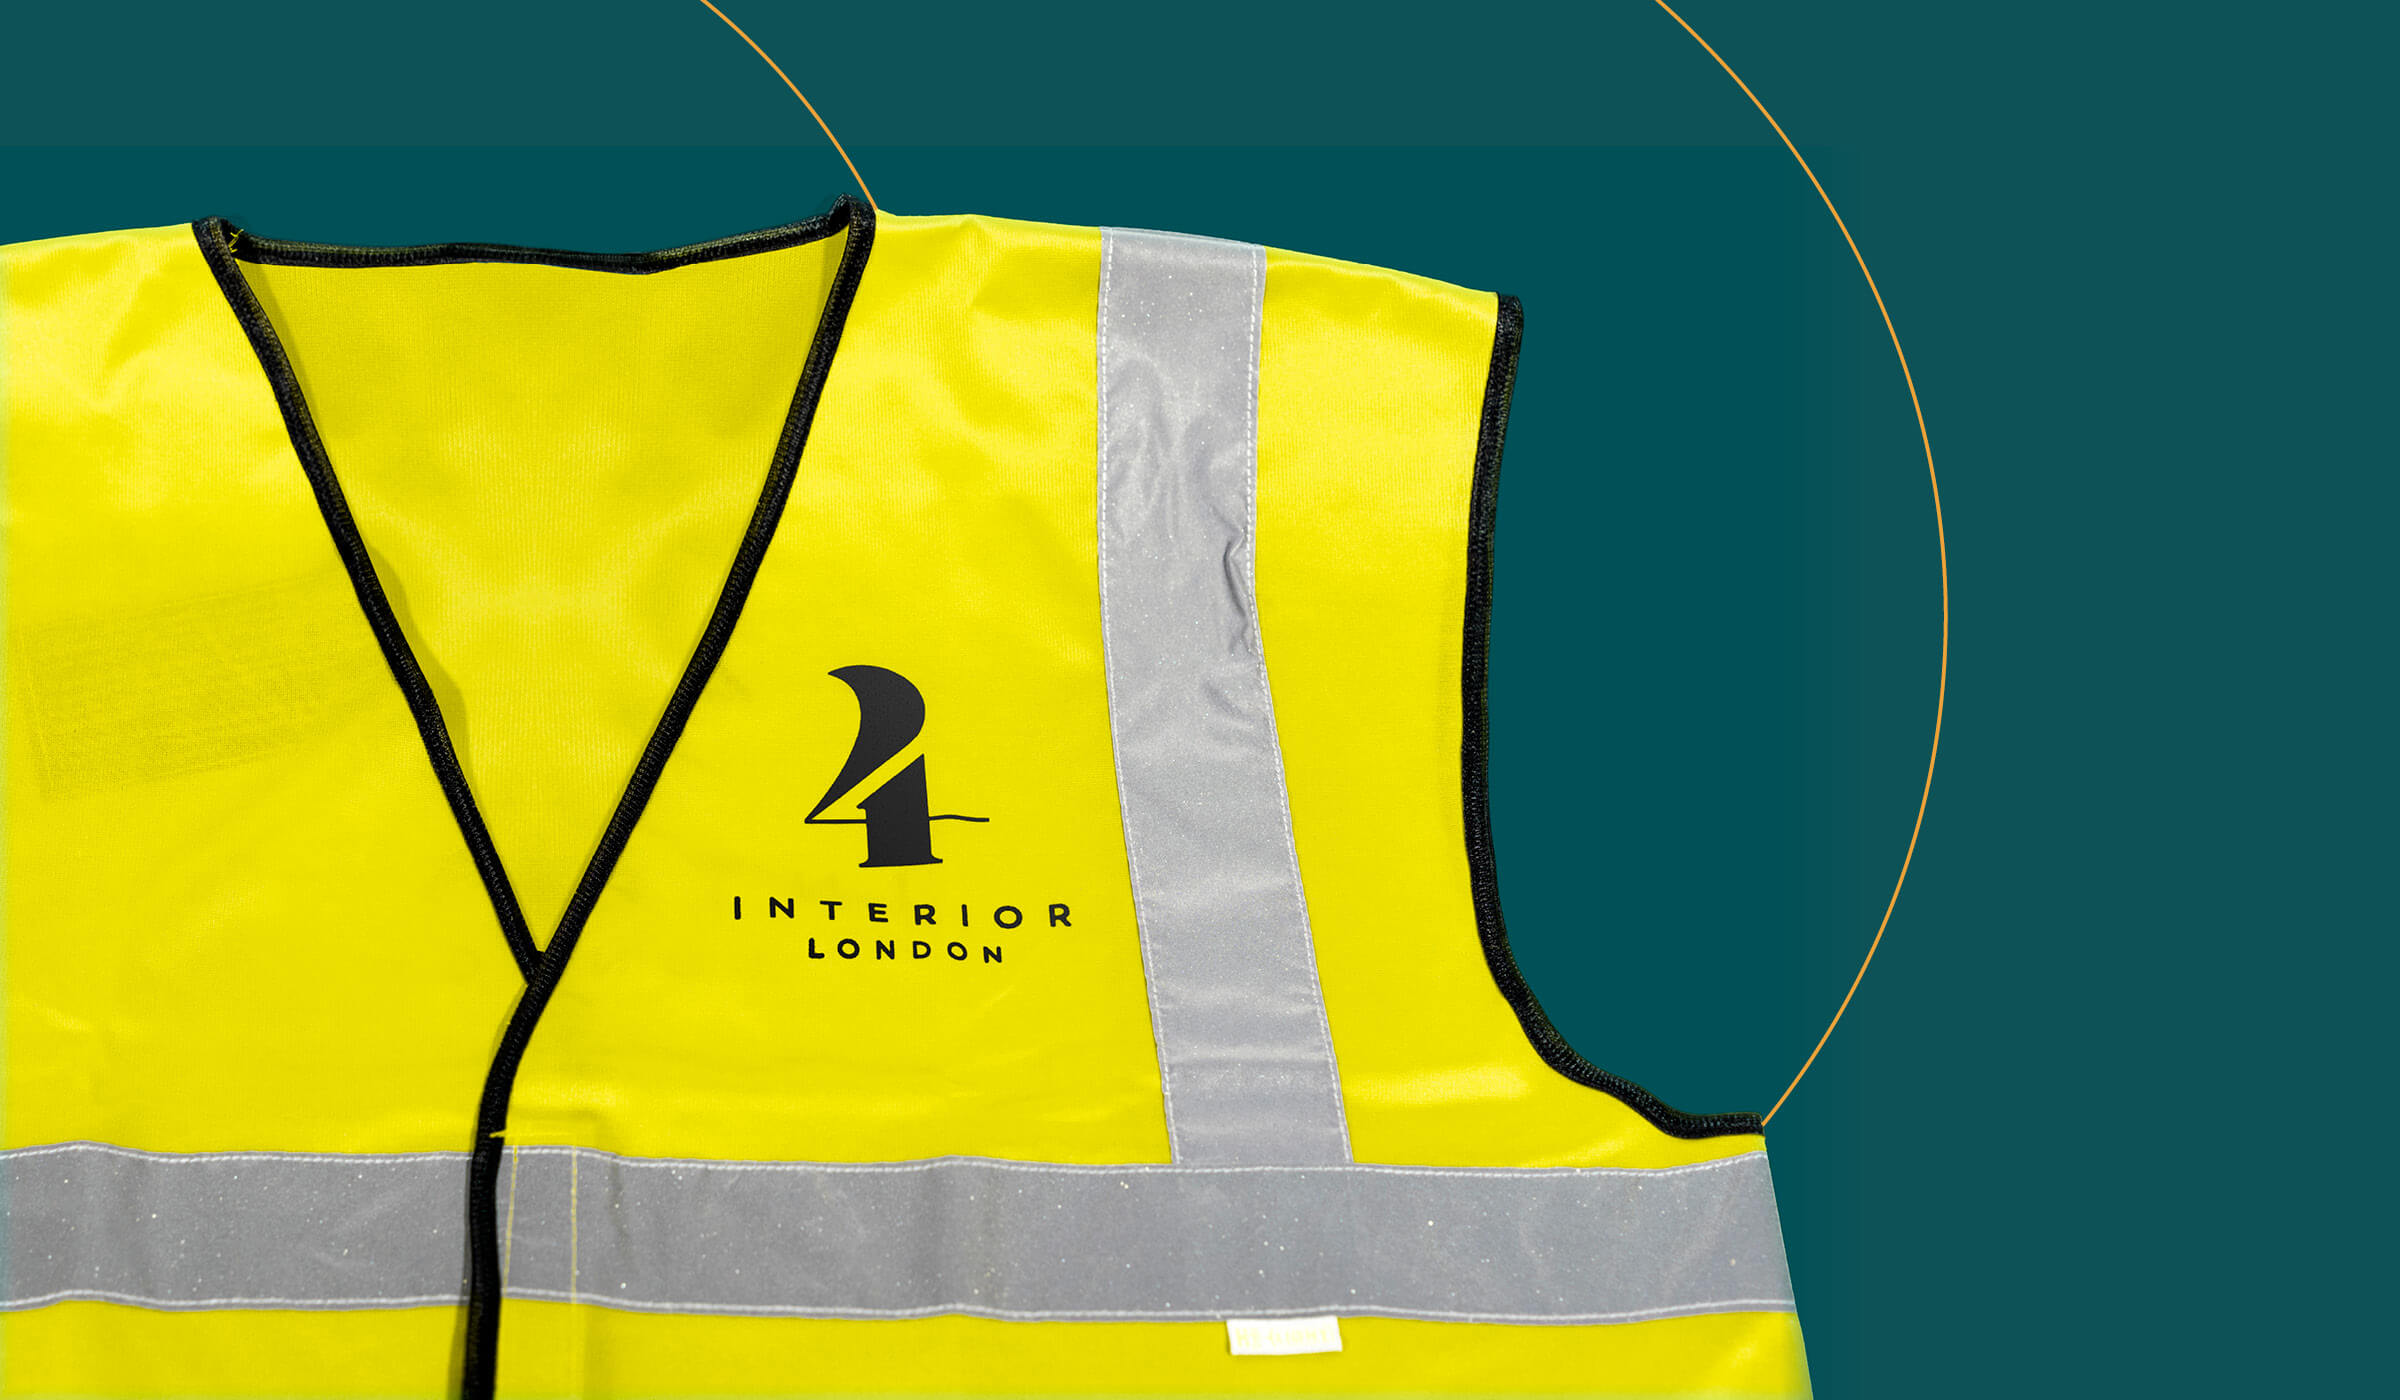 4interior branded workwear